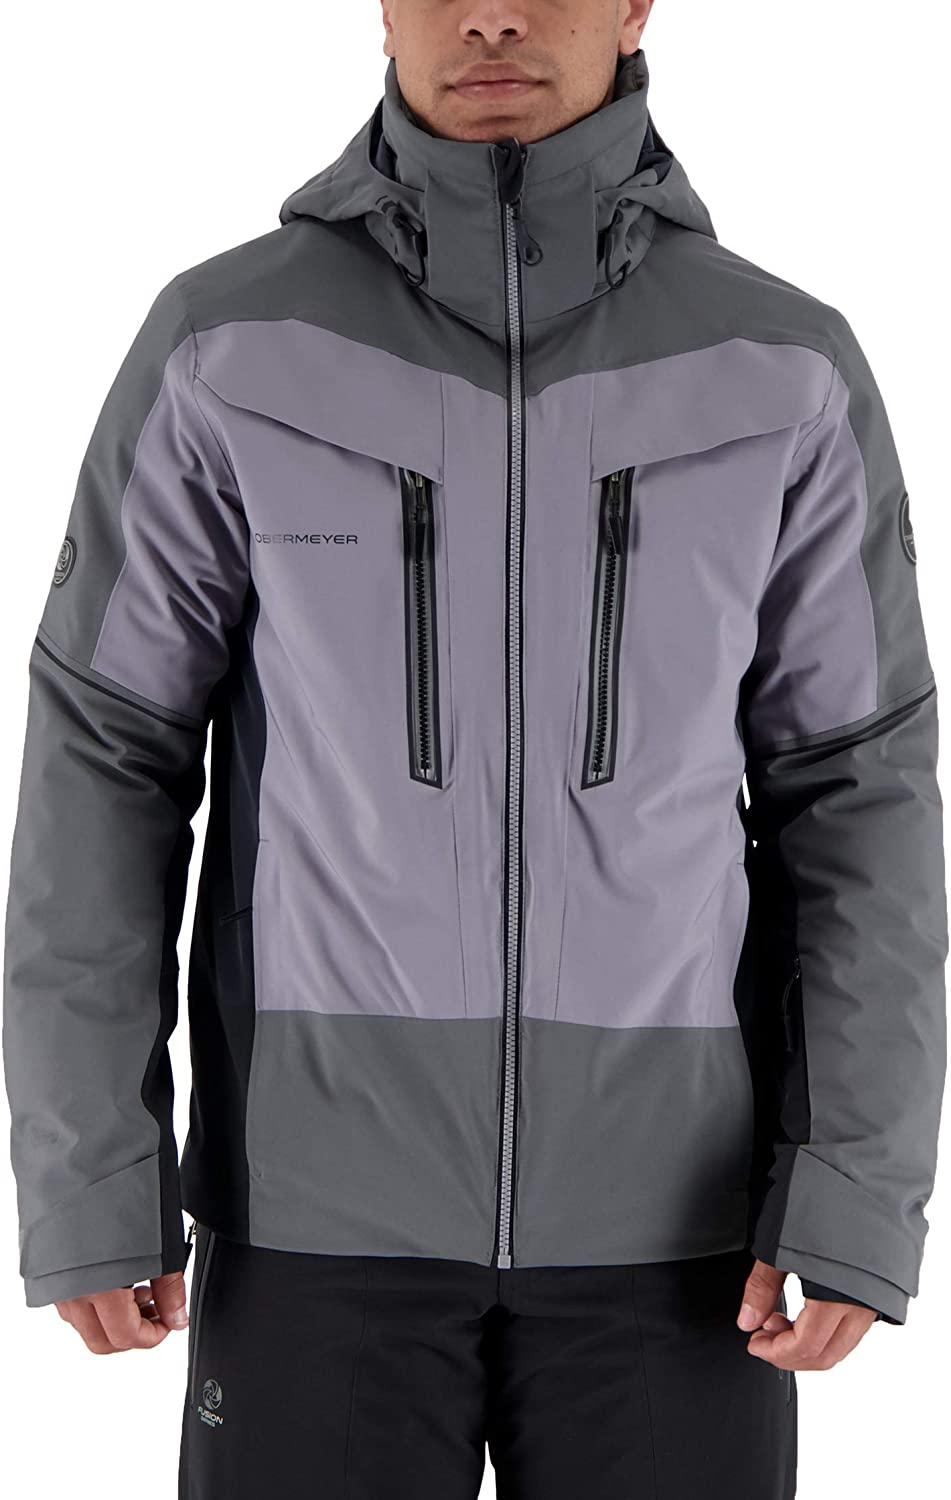 Obermeyer Men's Jacket Charger Omaha Super sale period limited Mall